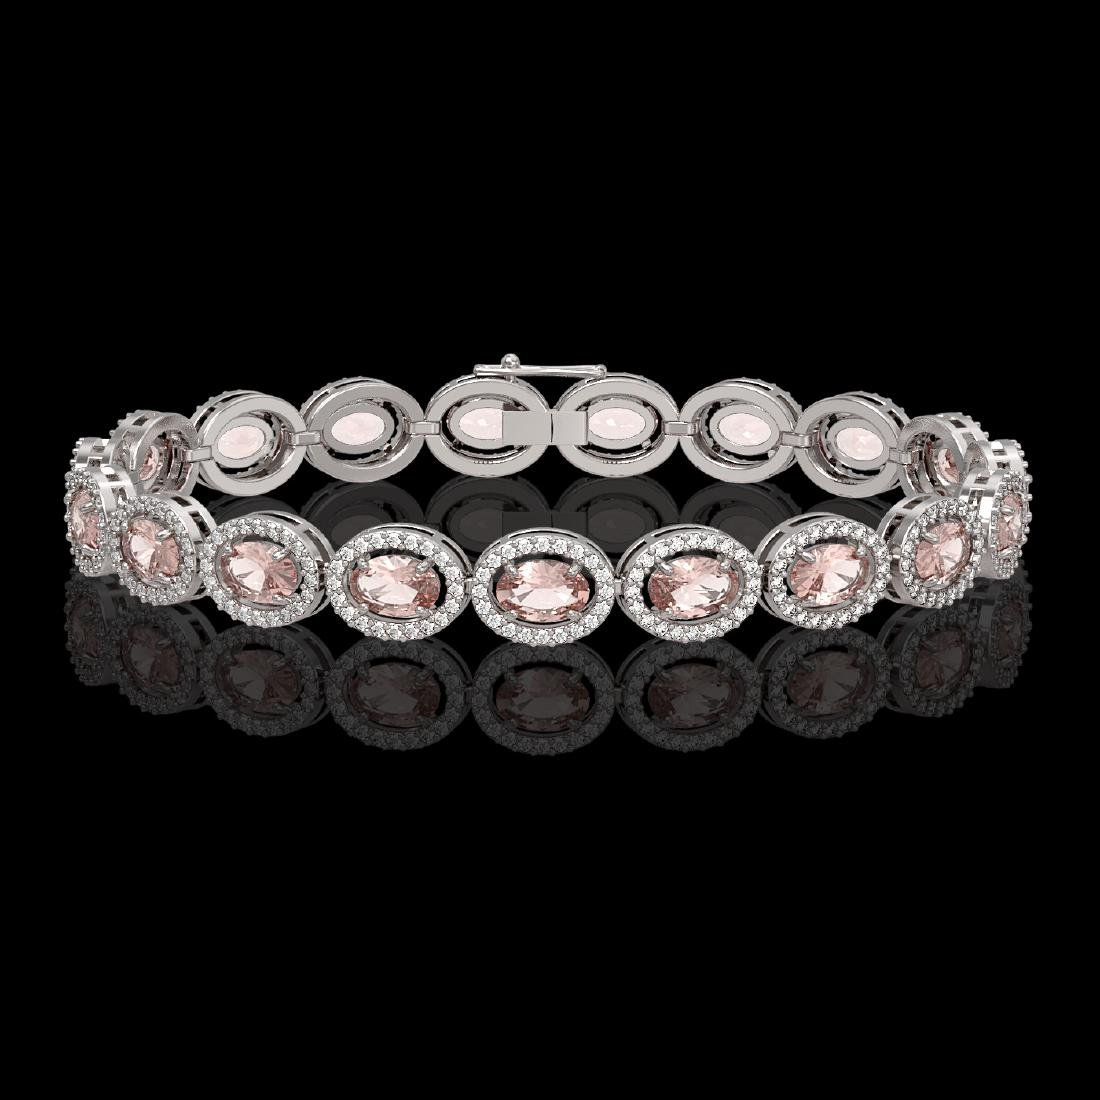 14.25 CTW Morganite & Diamond Halo Bracelet 10K White